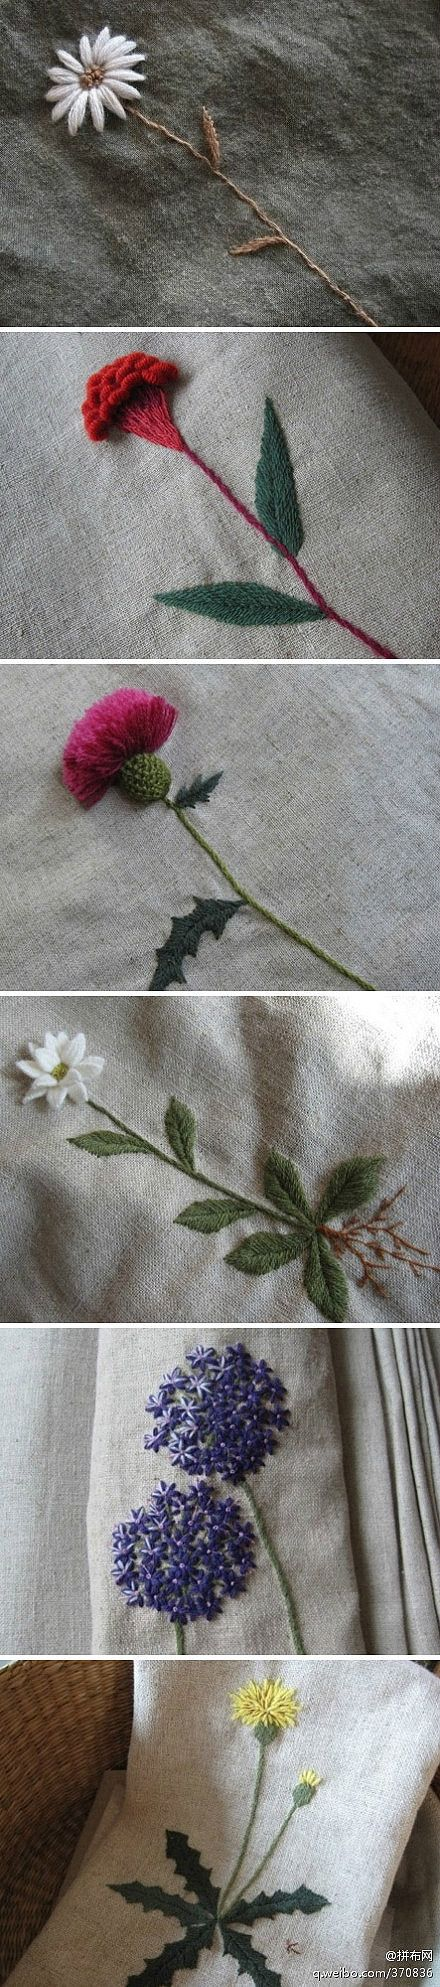 Just look at that thistle! DIY Fabric Craft flower